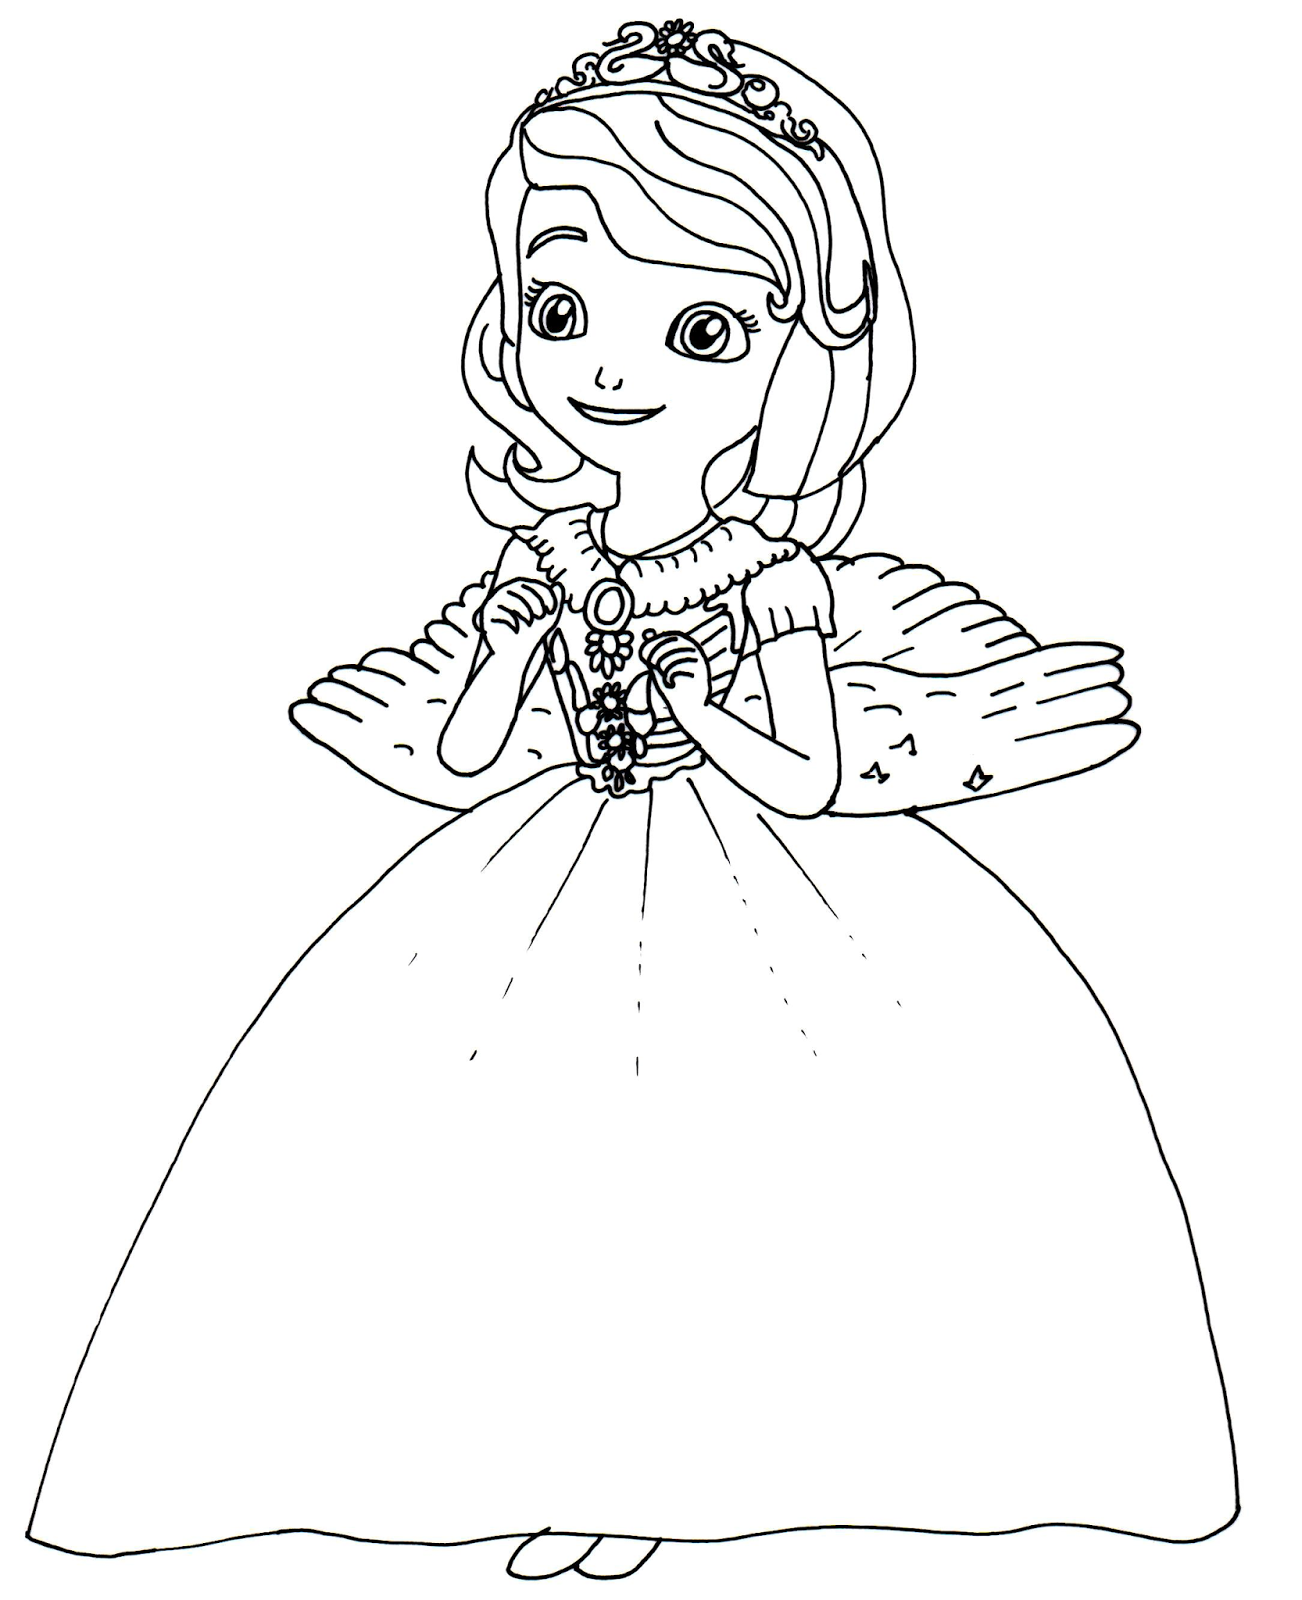 sofia the first coloring pages halloween costume sofia the first coloring page Disney Princess Coloring Pages  Princess Sofia Coloring Book